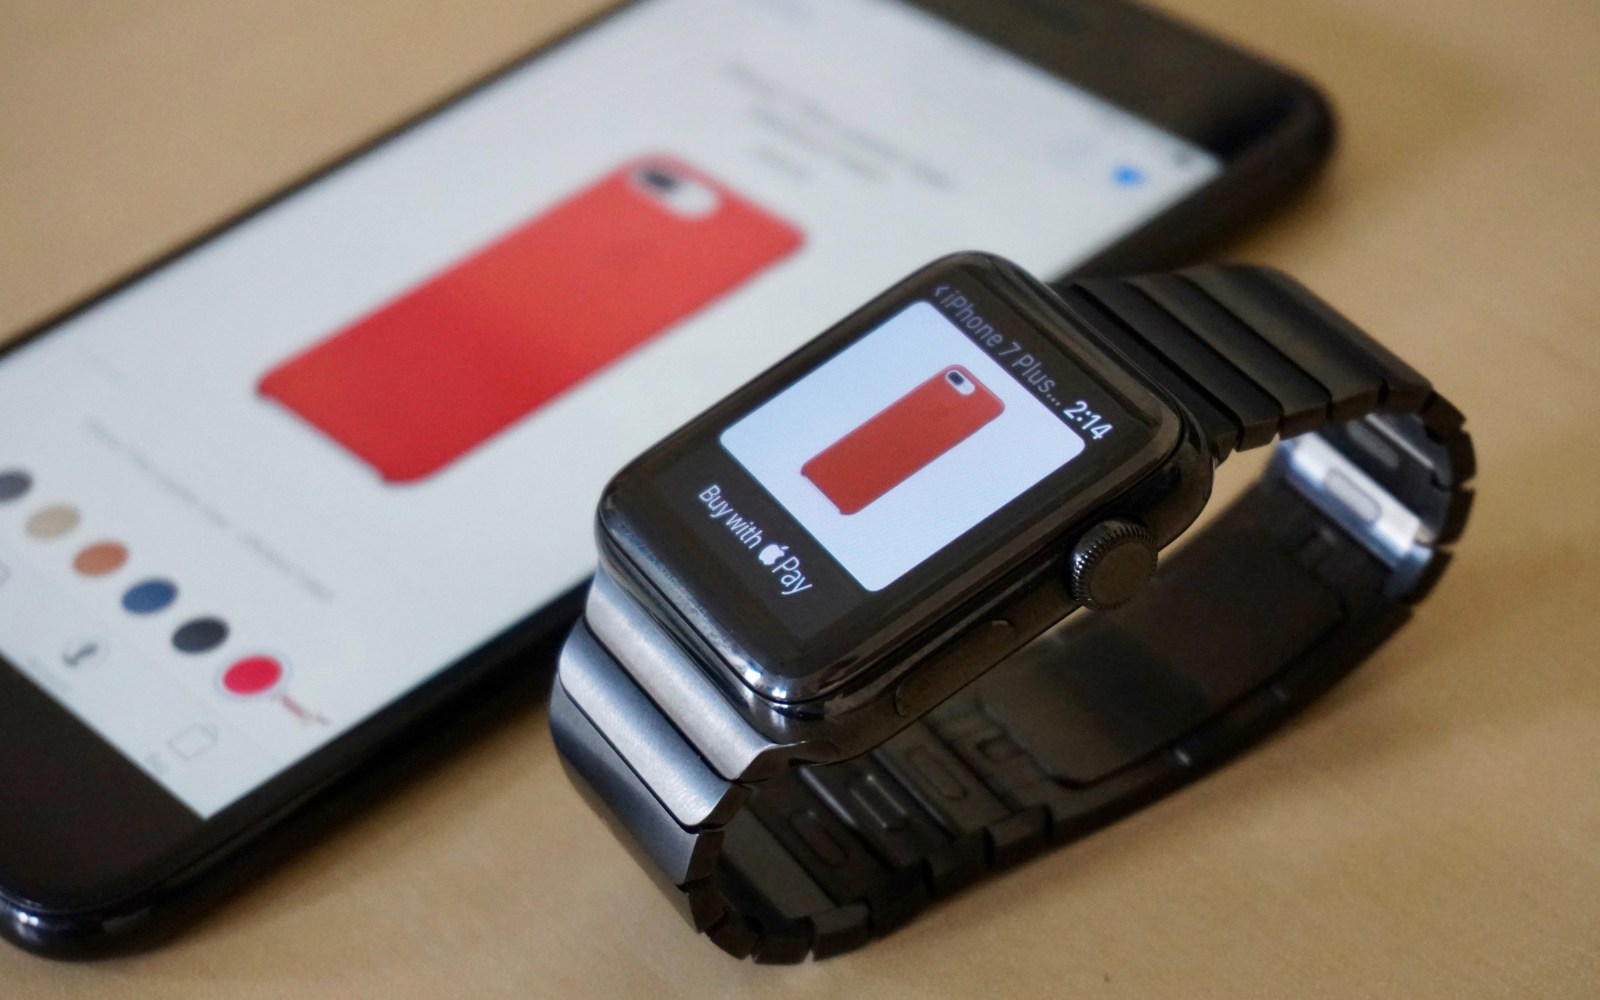 Apple Pay expands to over 40 more banks and credit unions around the US